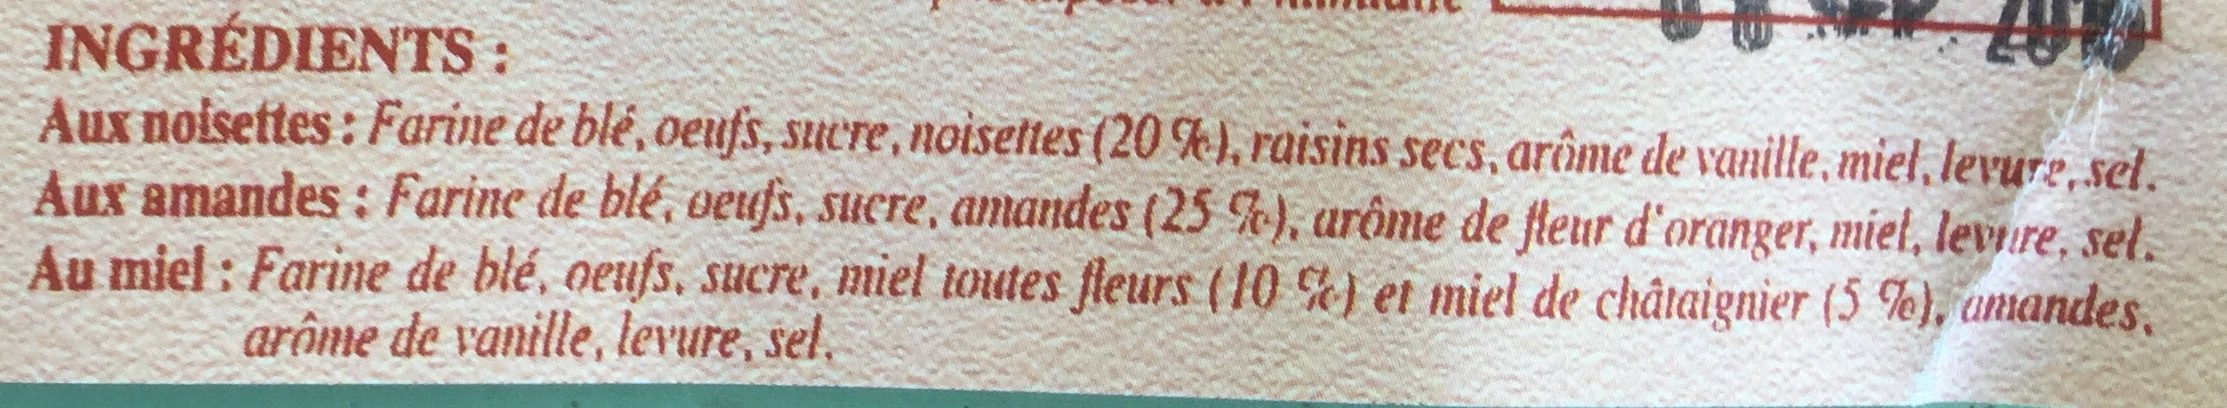 La croquette des Alpages - Ingredients - fr